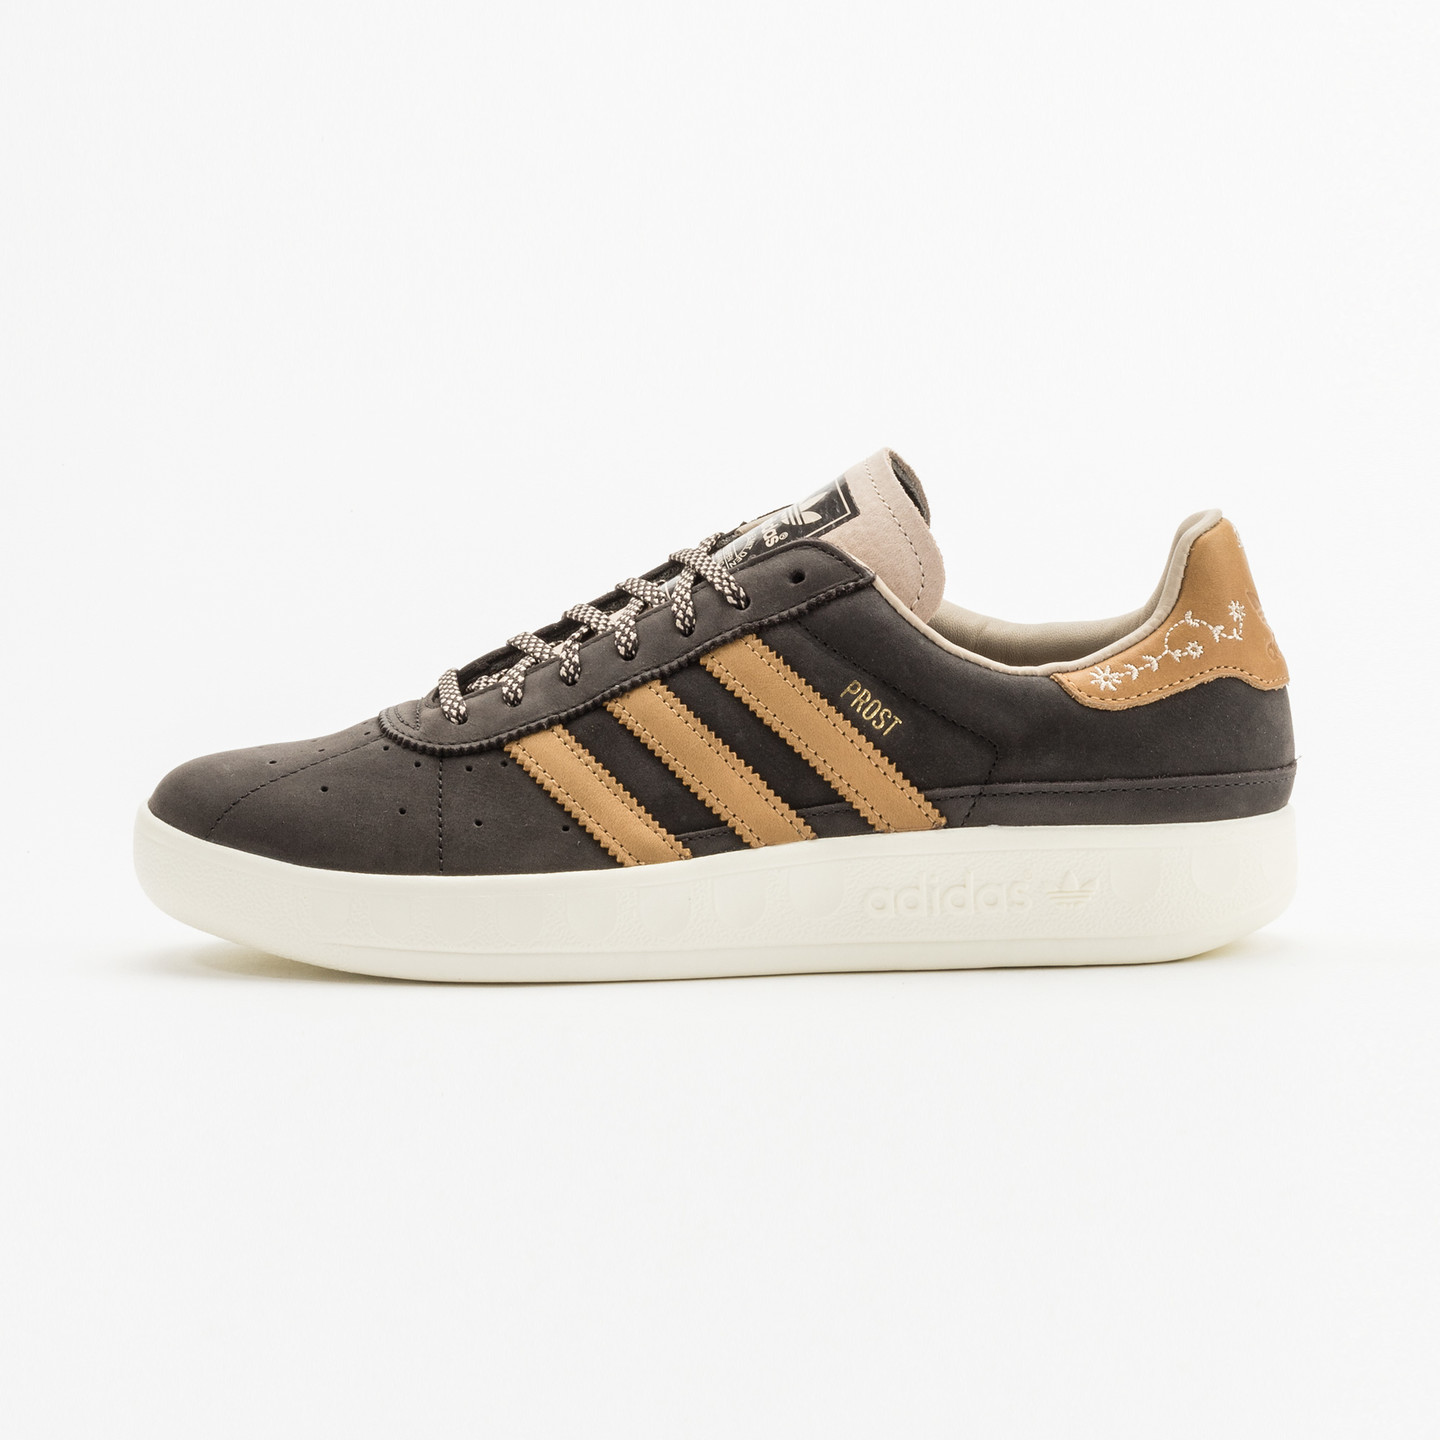 Adidas München 'Oktoberfest' - Made in Germany Natural Brown / Mesa / Clabro BY9805